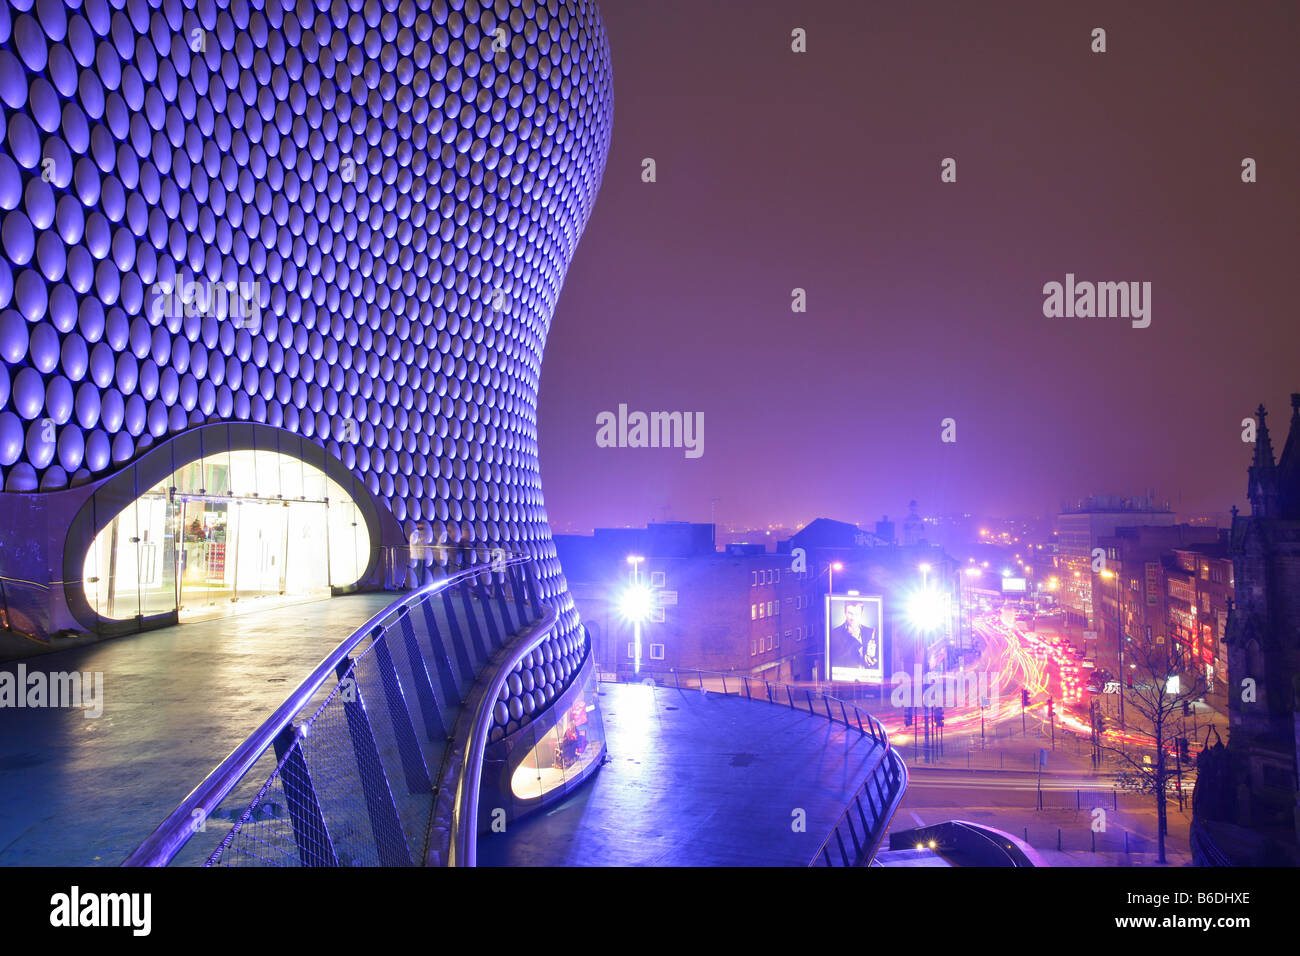 The Selfridges building in Birmingham City Centre England Part of the Bullring Shopping Centre At night - Stock Image